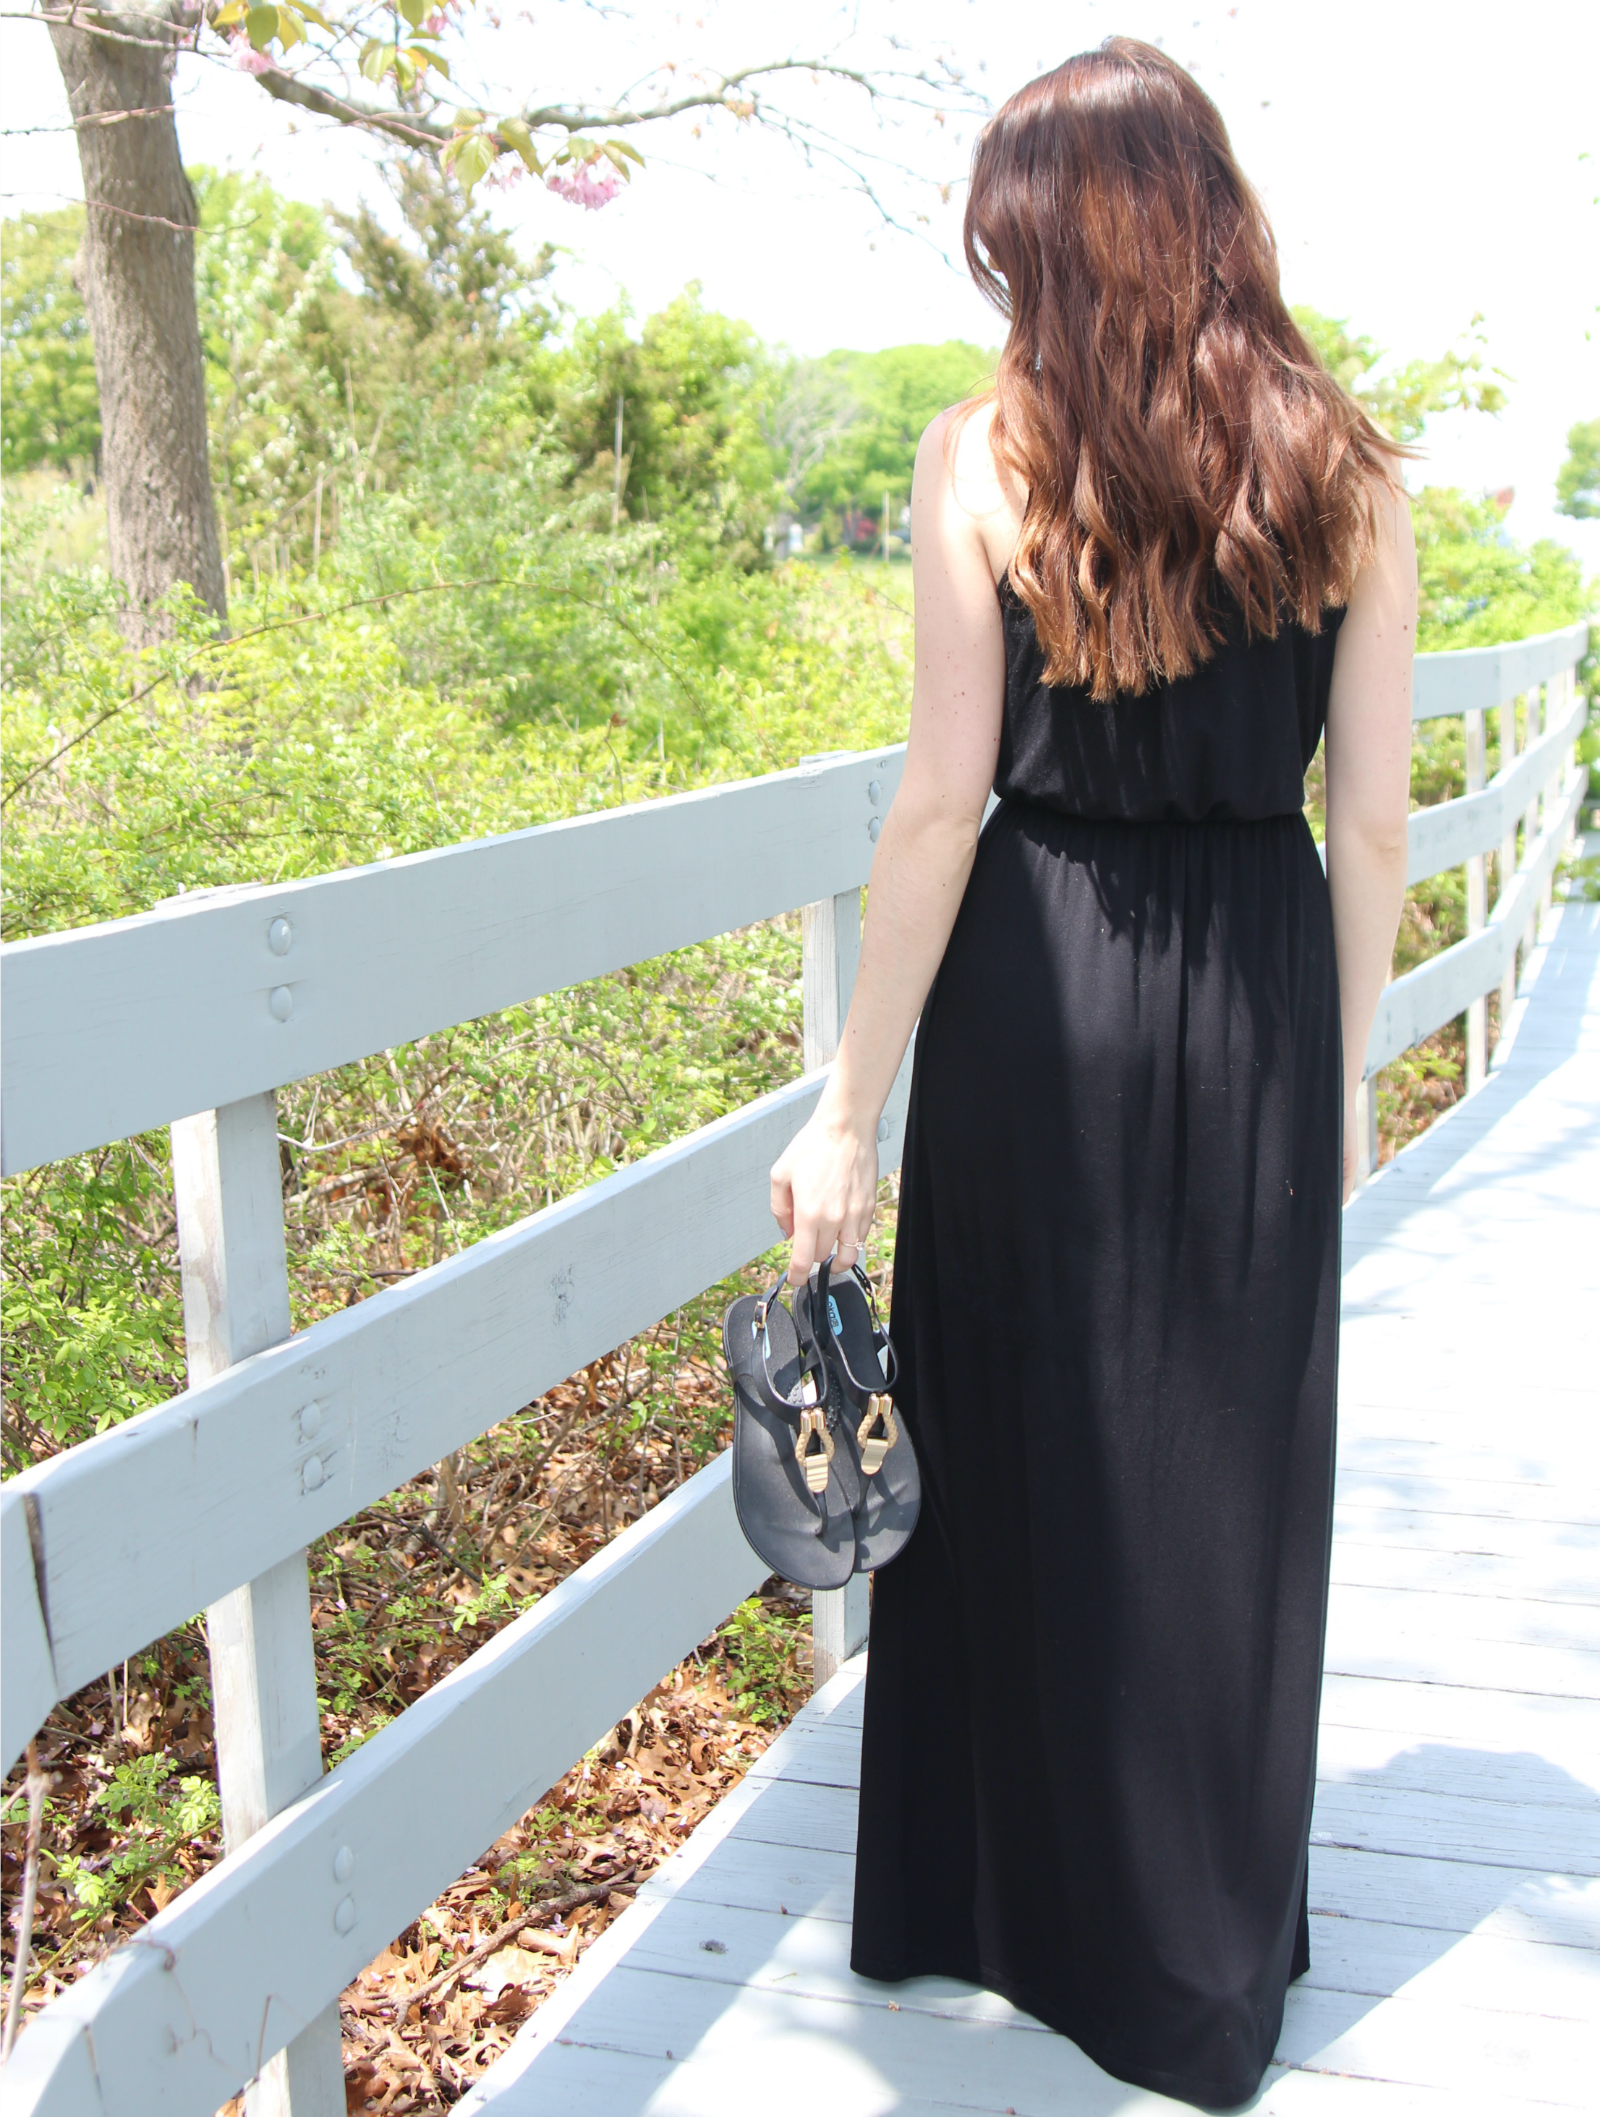 OkaB Sandals - Connecticut Style Blogger